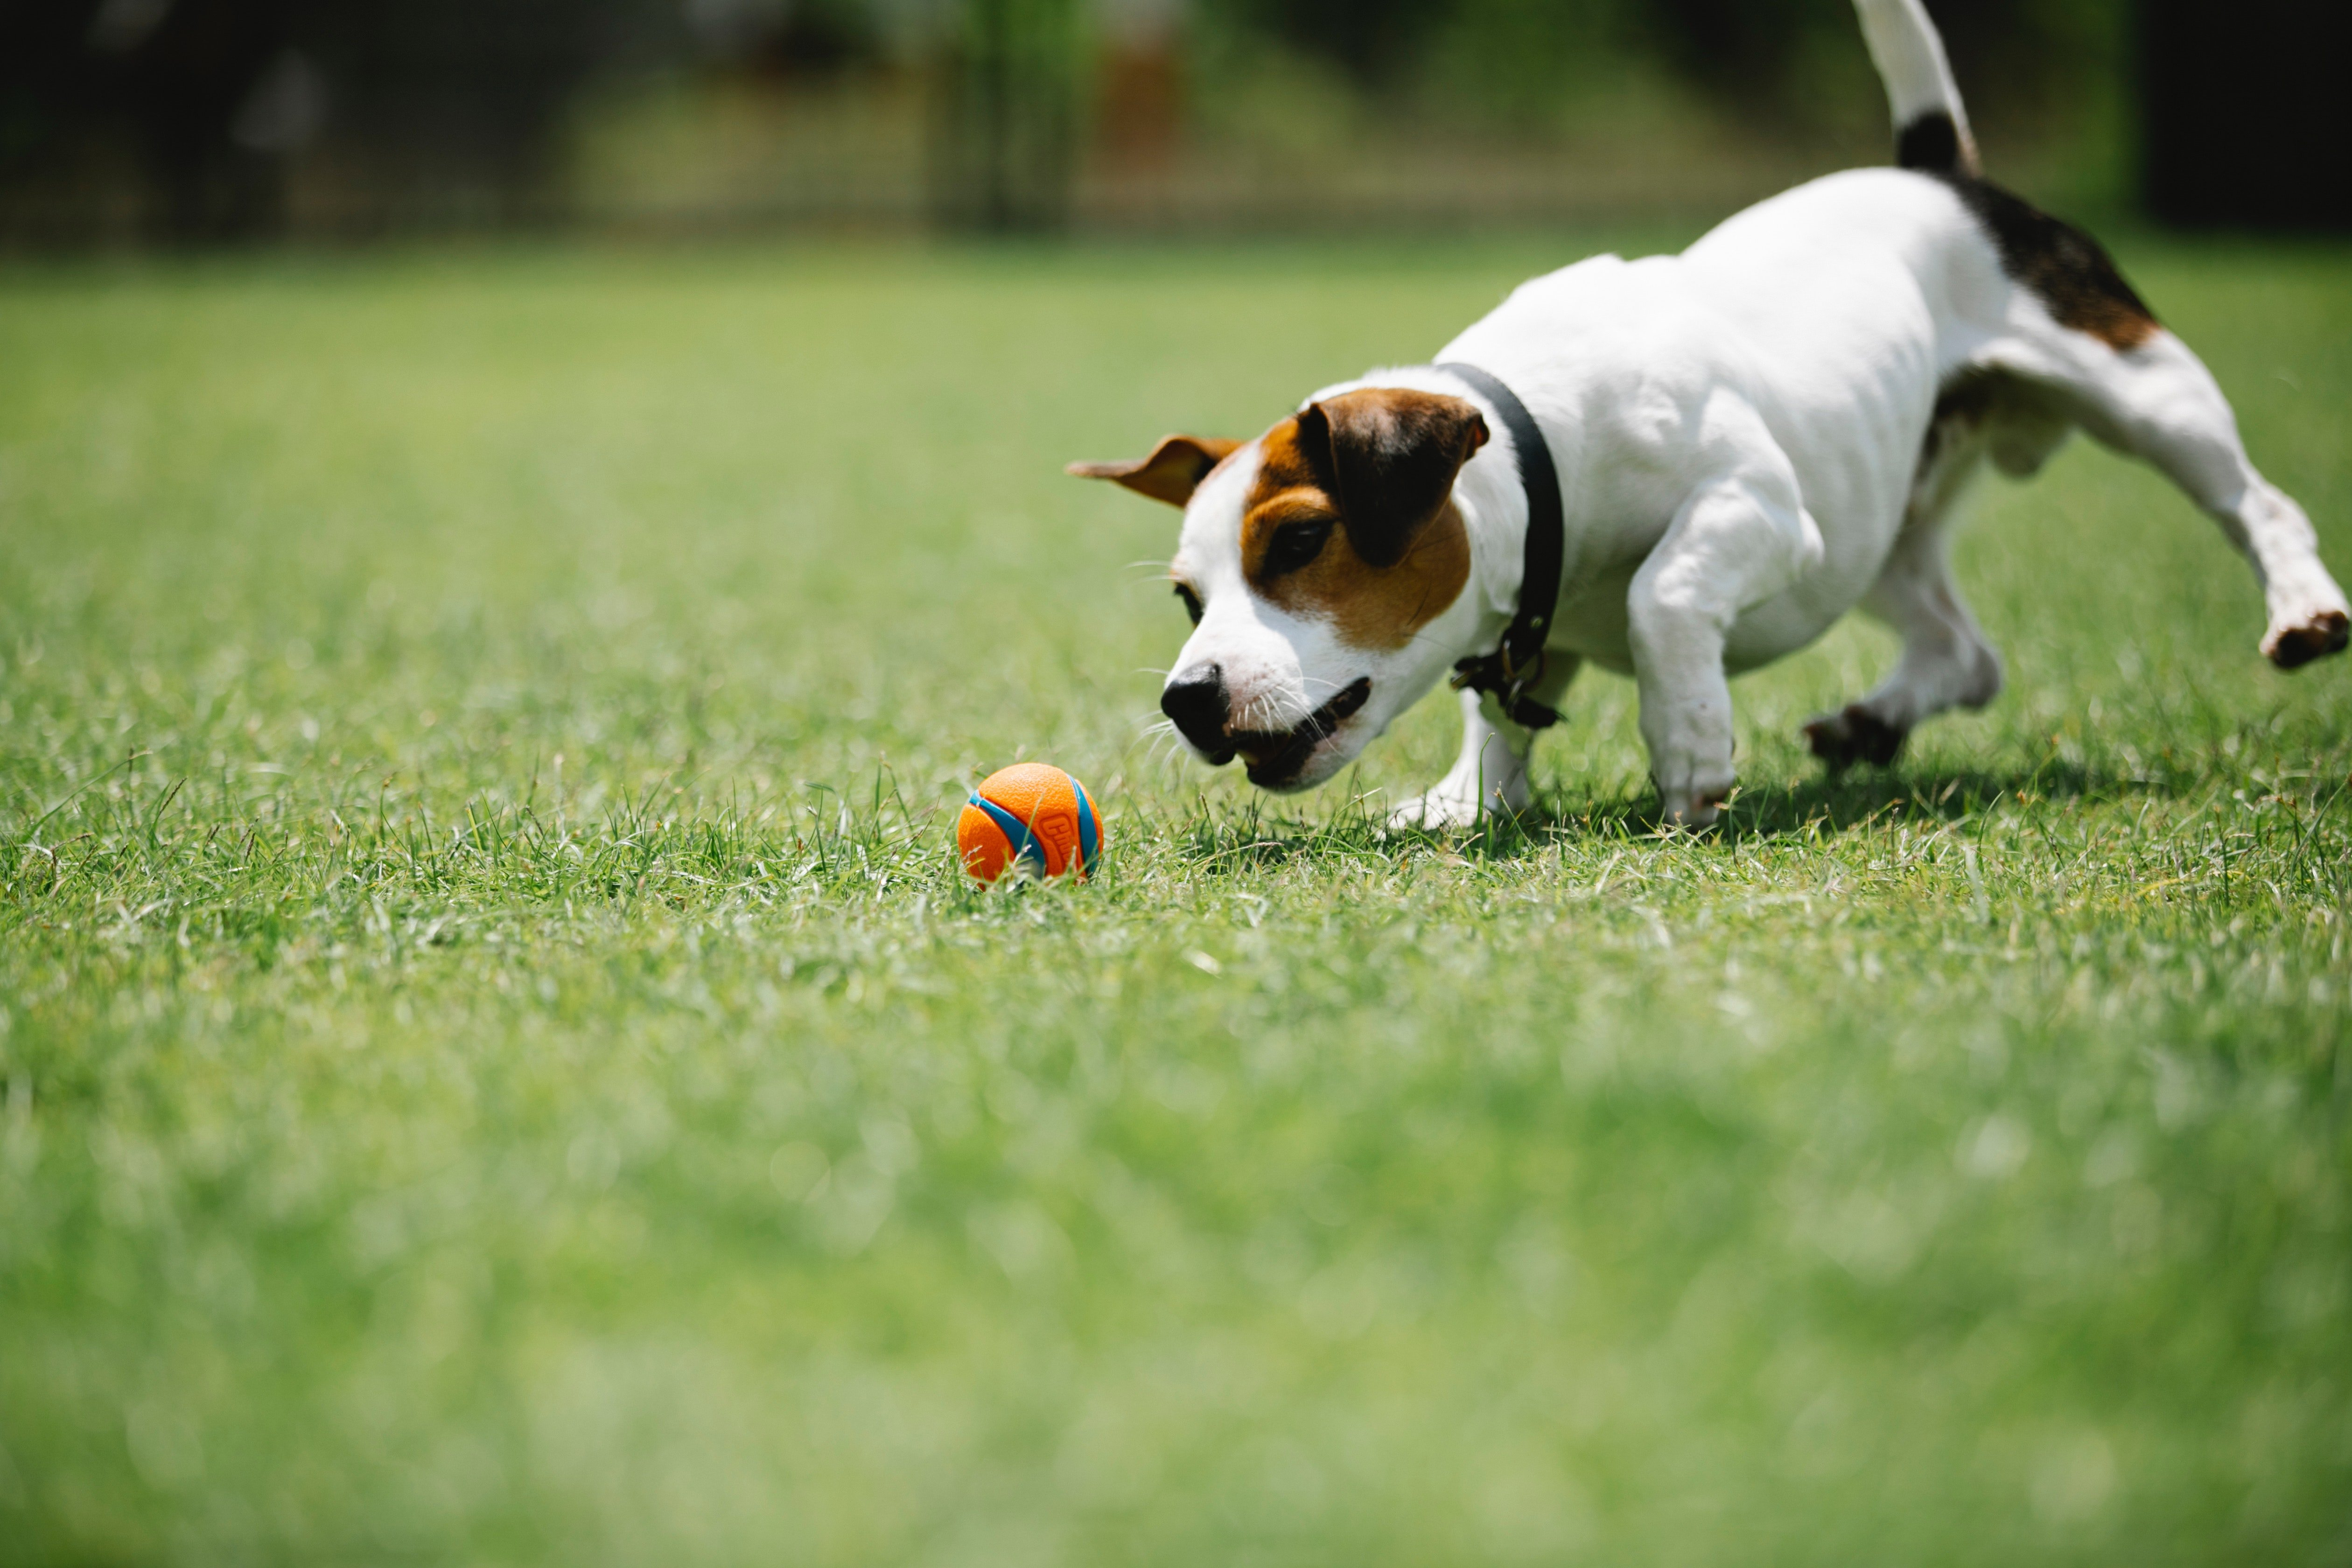 A dog playing with a ball in the lawn. | Photo: Pexels/Blue Bird